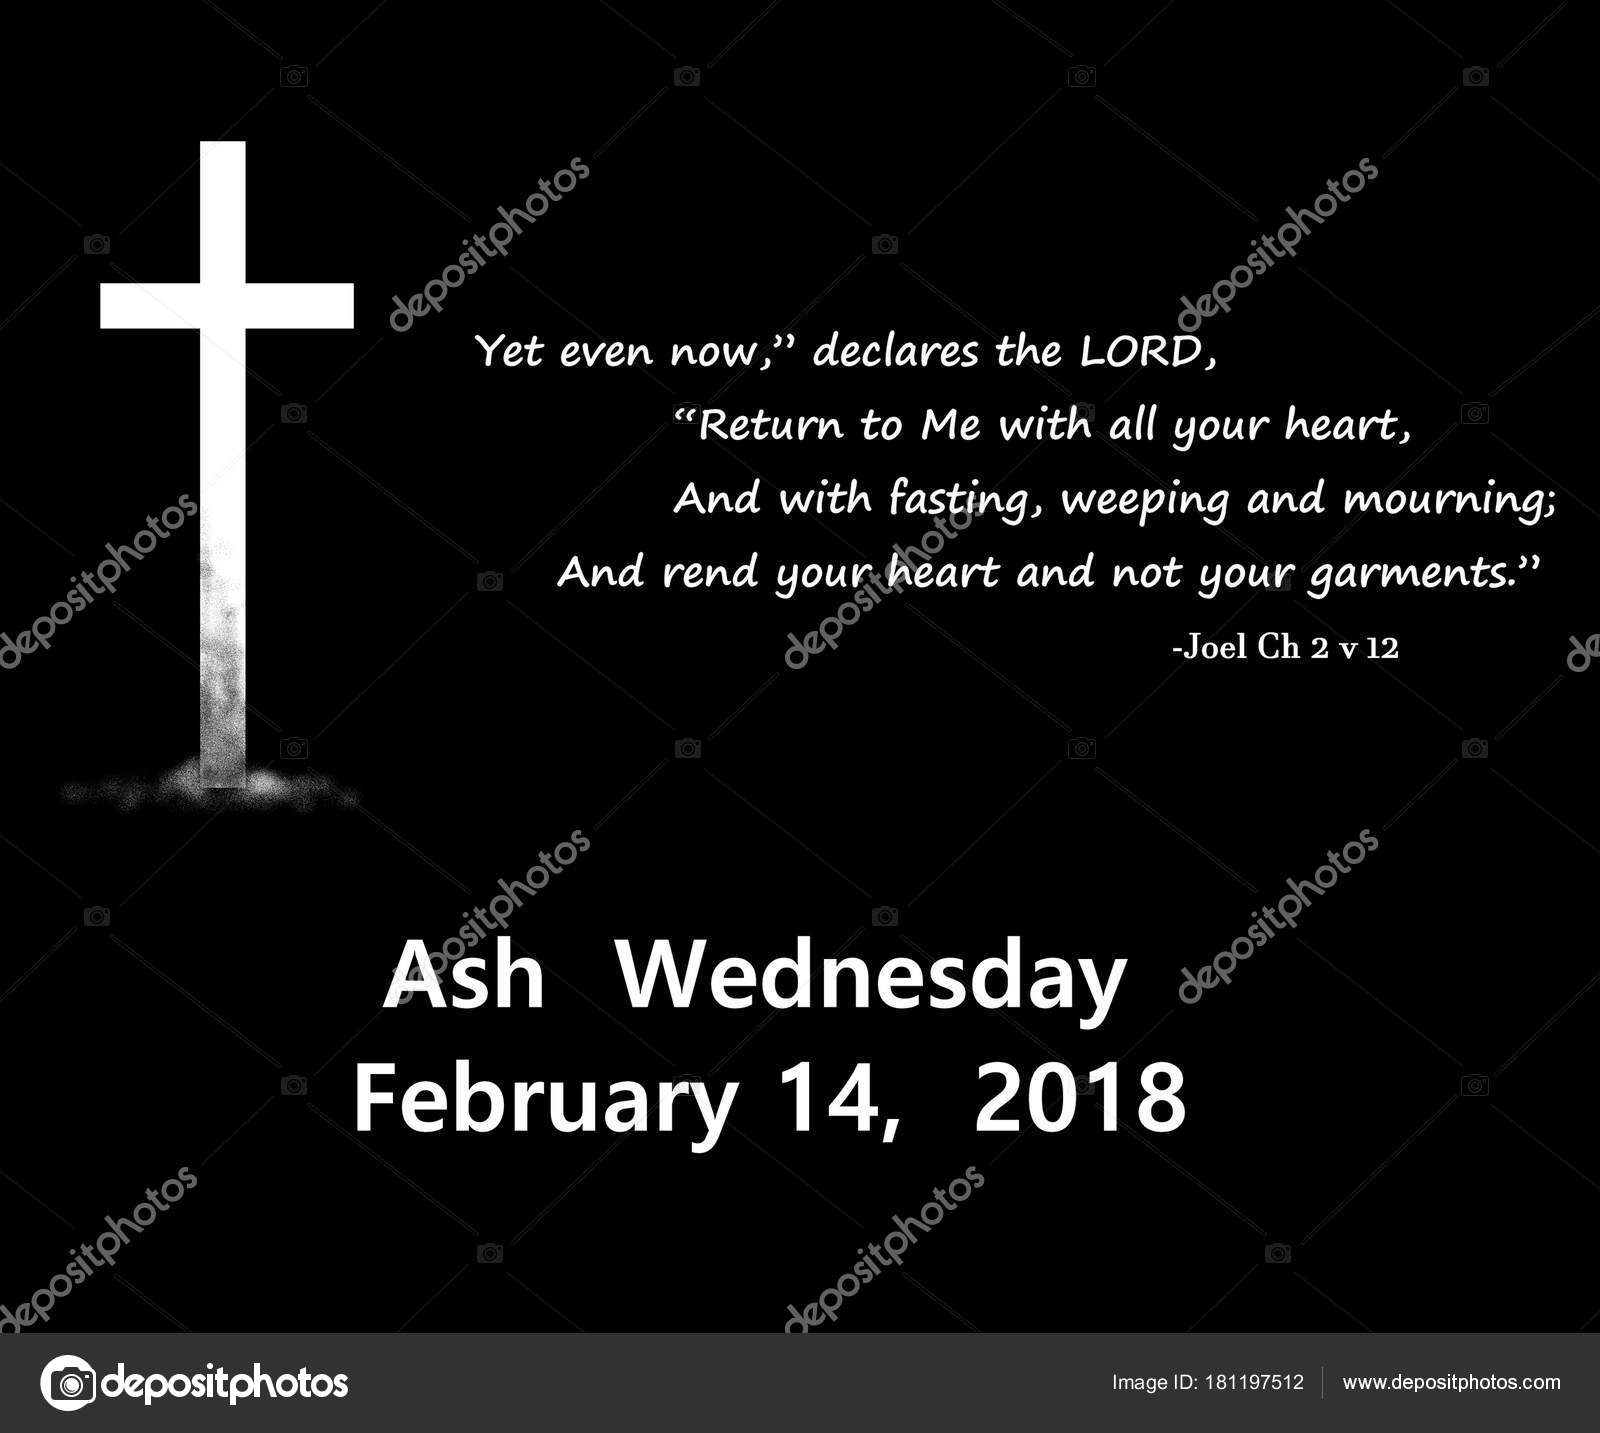 2018 ash wednesday date icon lent quote book joel stock photo 2018 ash wednesday date icon lent quote book joel stock photo buycottarizona